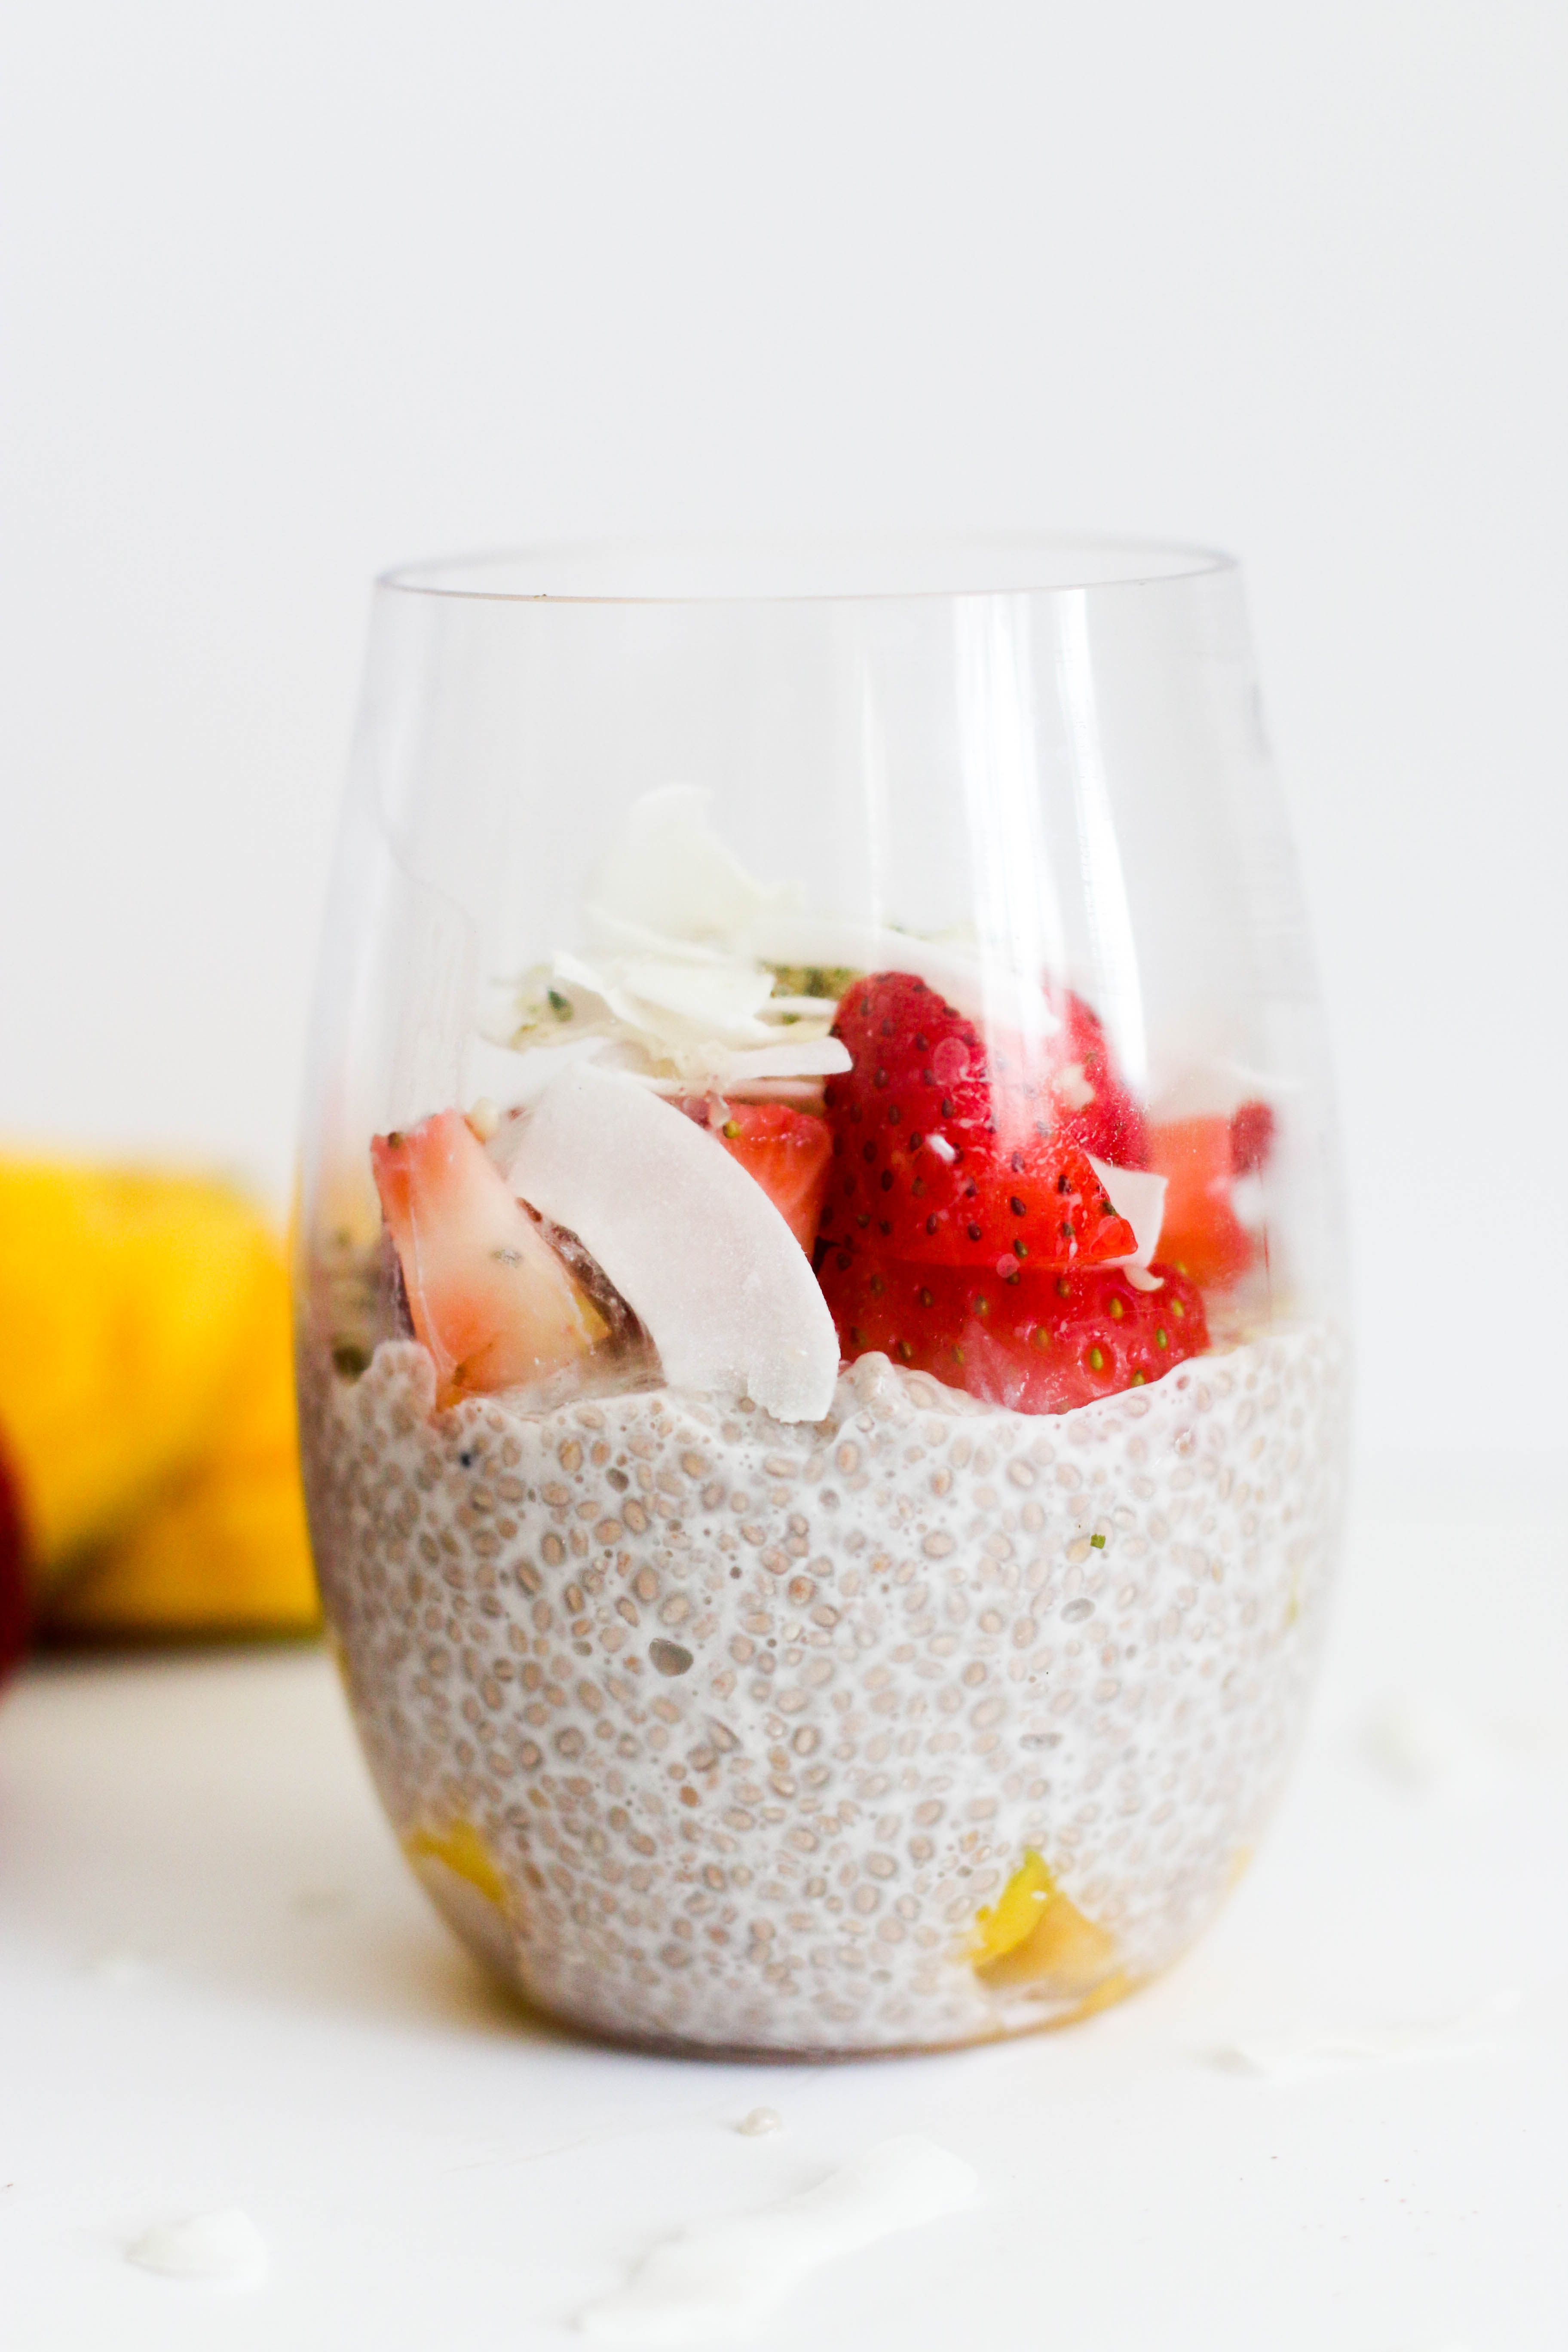 This mango strawberry chia pudding is vegan, gluten free, paleo, and delicious! It's made with minimal ingredients, requires almost no dishes, and is filled with nutrients.